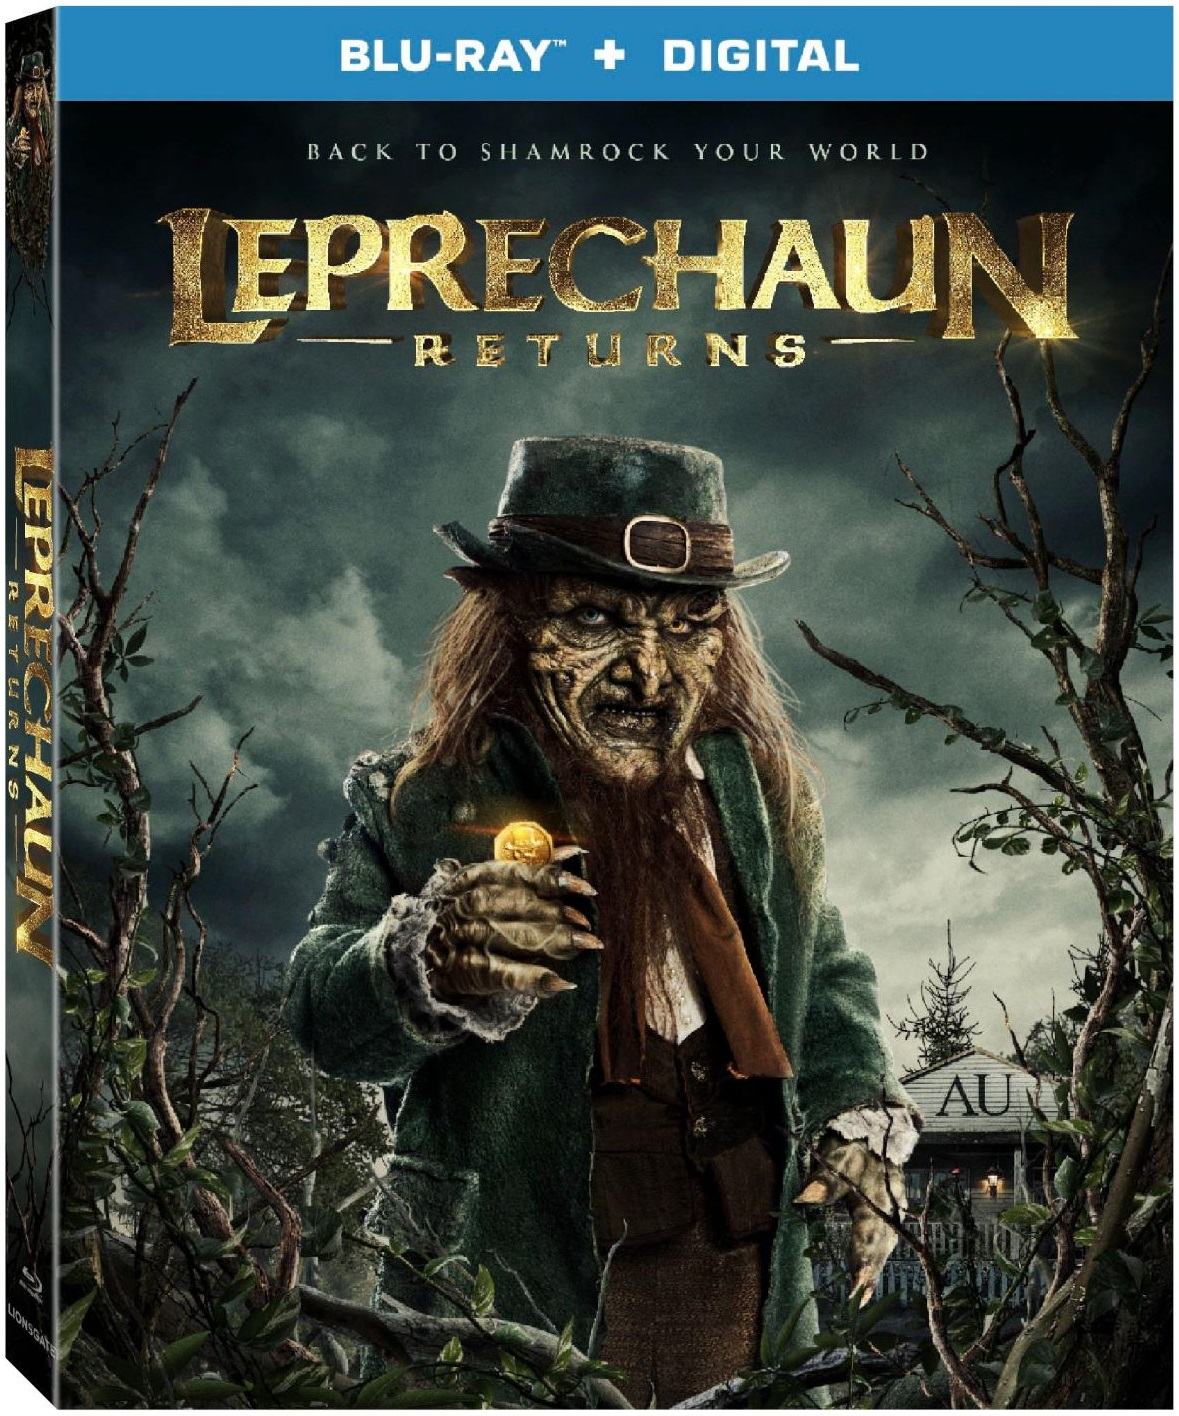 Leprechaun Returns Blu-Ray